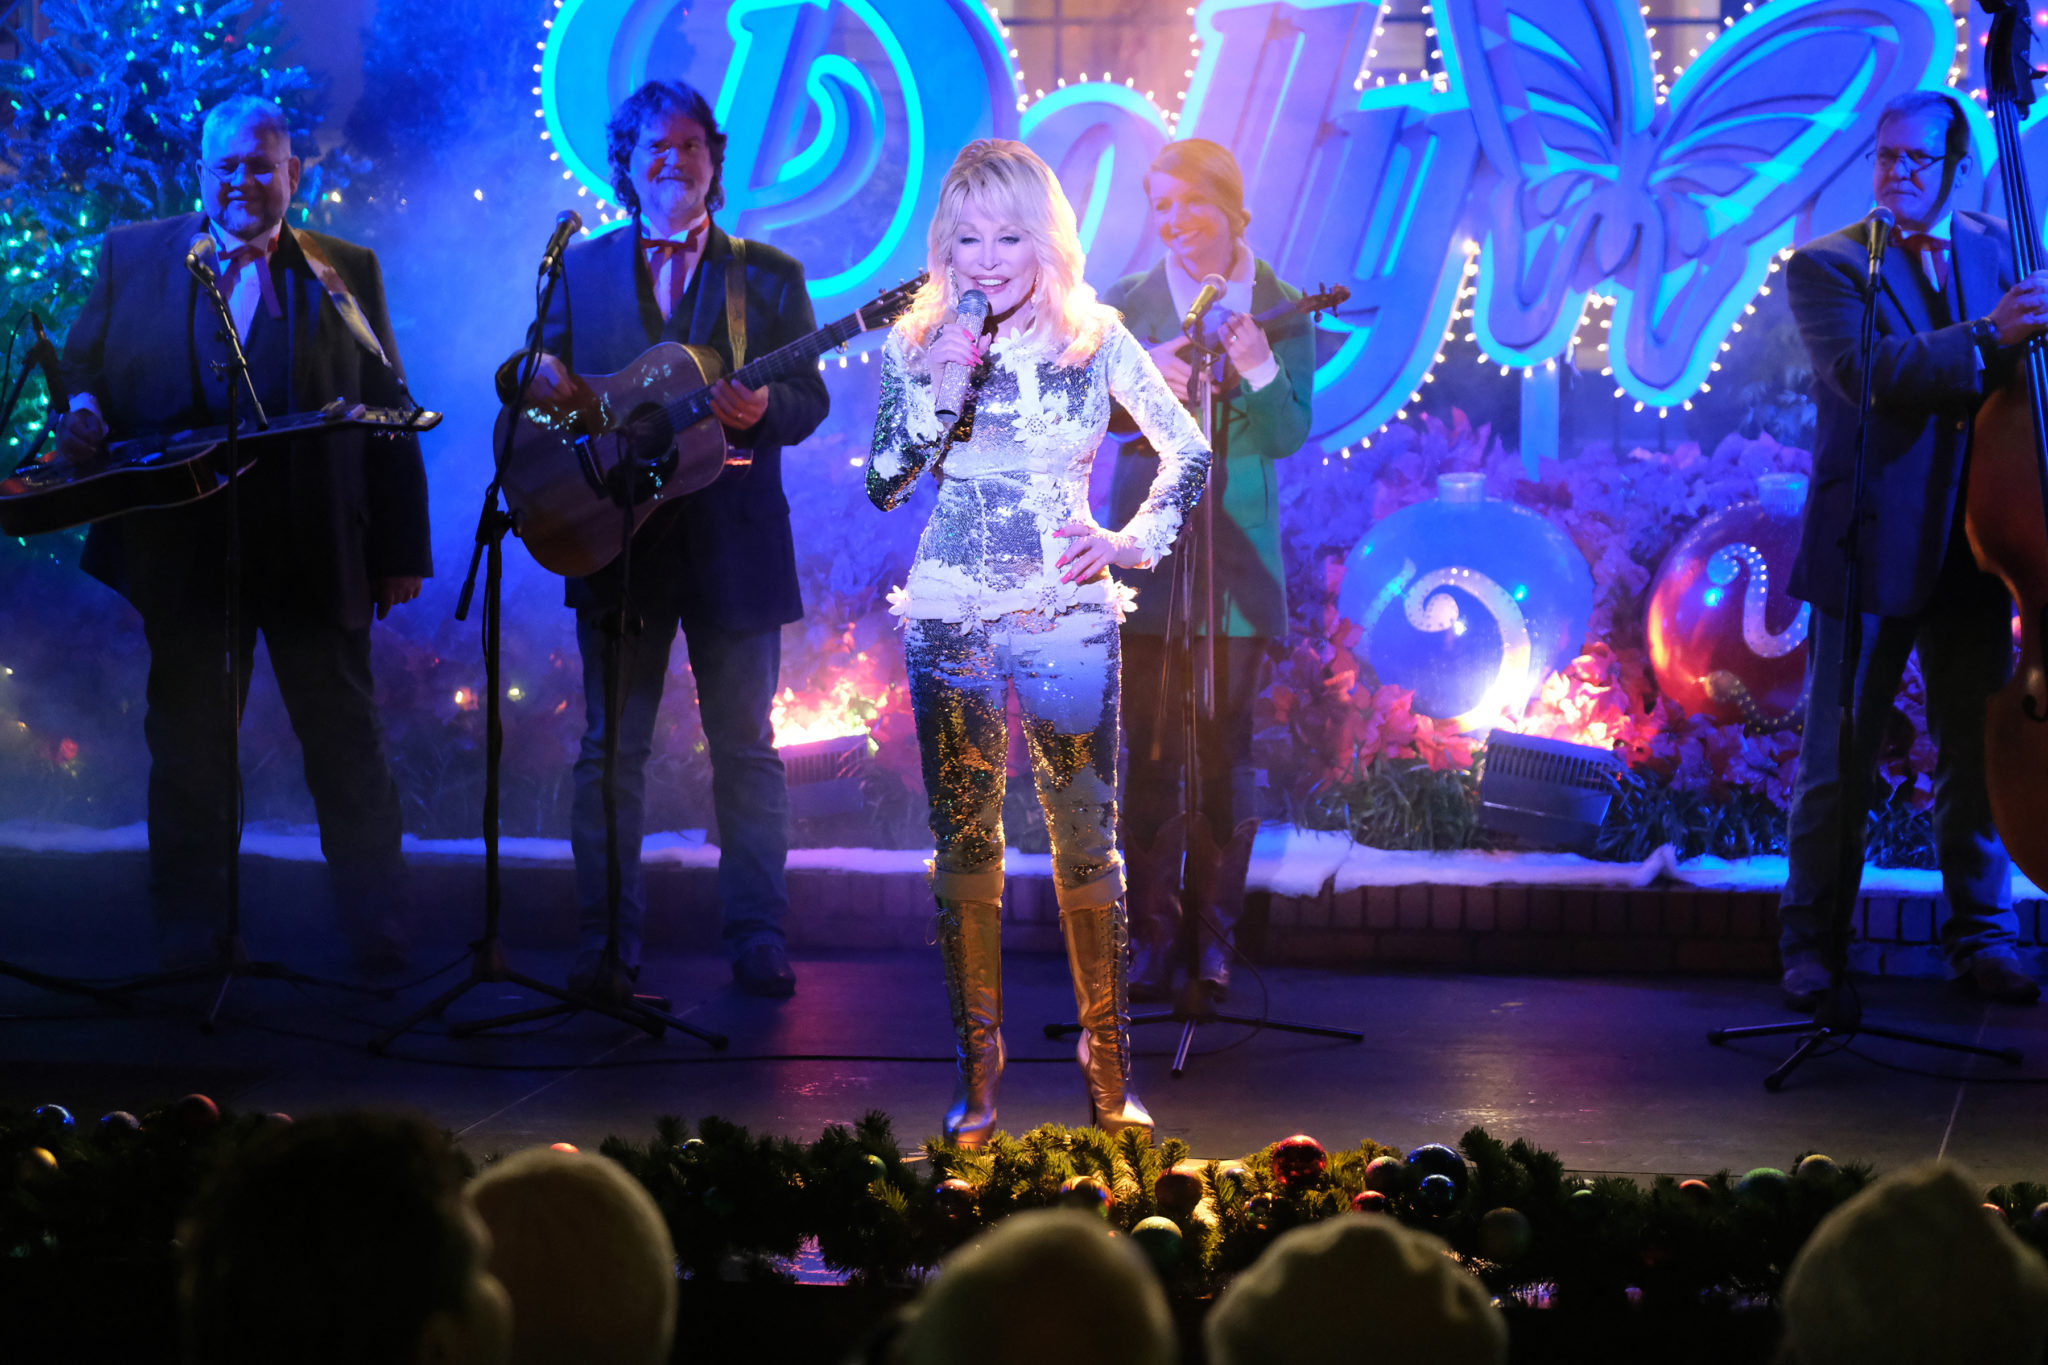 Christmas At Dollywood, Photo: Dolly Parton Credit: ©2019 Crown Media United States LLC/Photographer: Curtis Hilbun